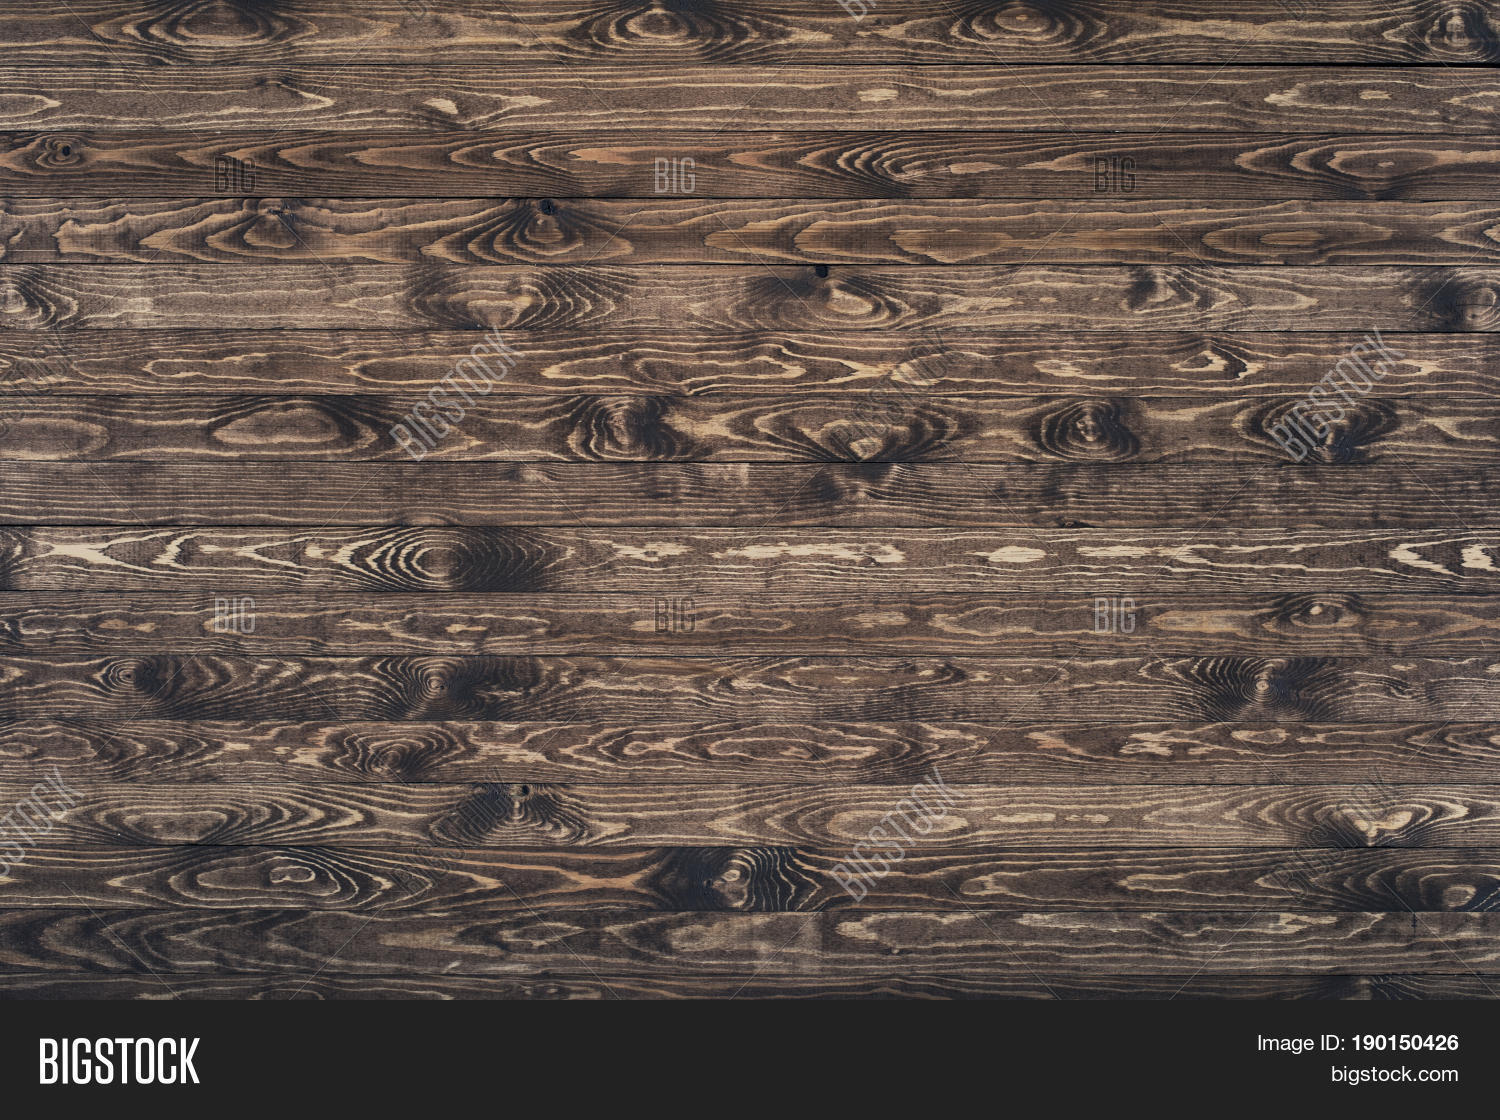 Wood table top texture - Wood Texture Material Background Rustic Wood Texture Wood Texture Background Top View Vintage